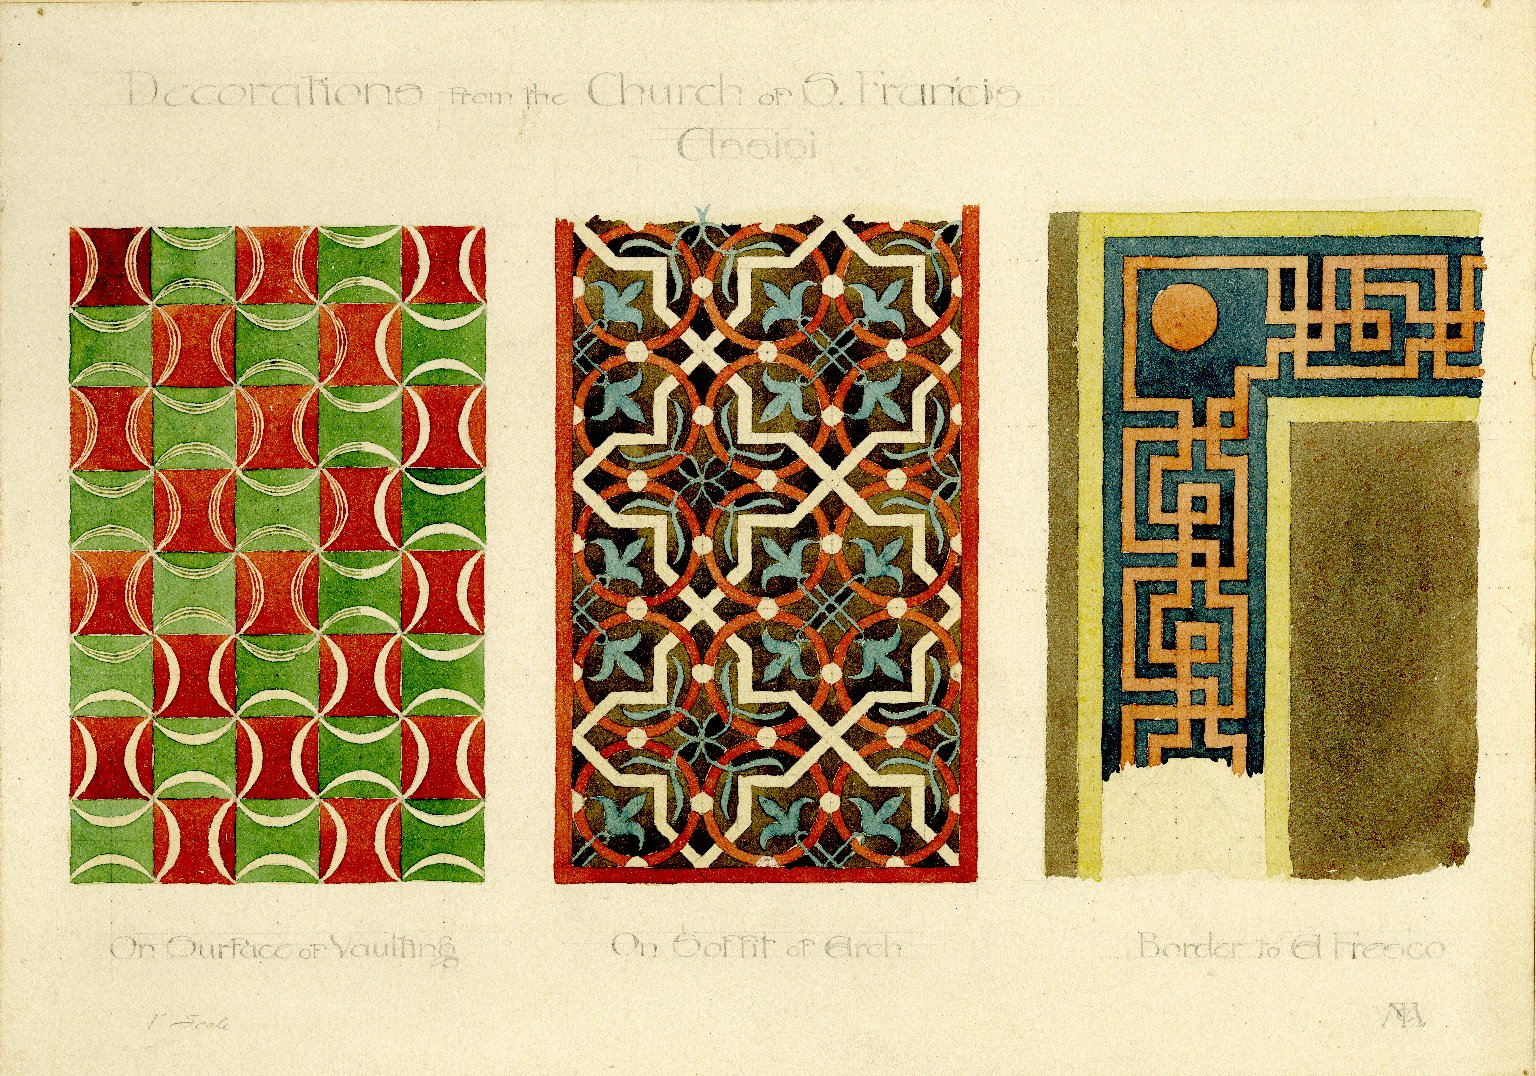 Designs at the church of St. Francis Assisi